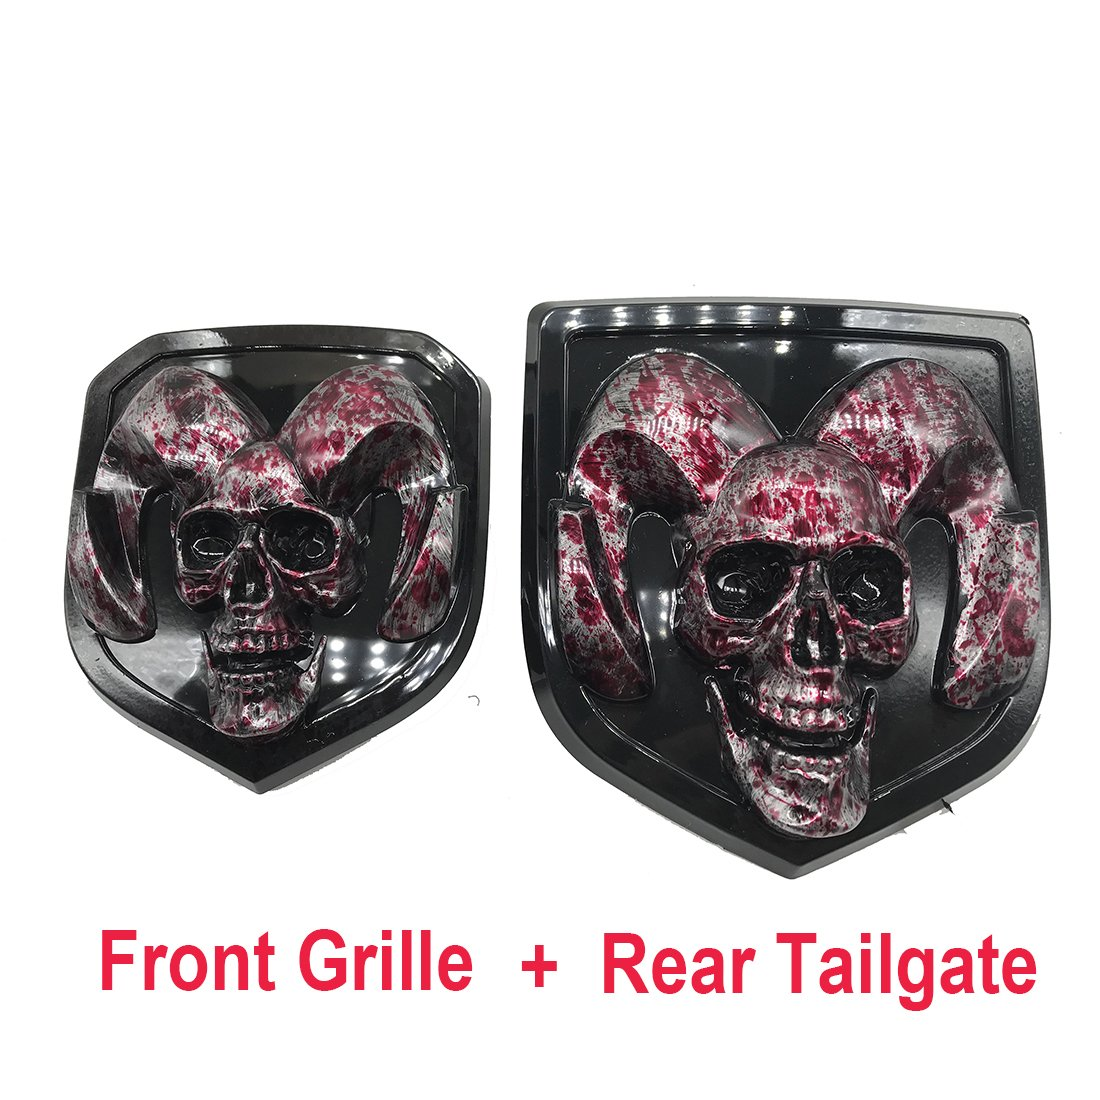 blood skull head Emblem Medallion Skull for Dodge Ram 1500 2500 3500 2013-2018  Tailgate + Grille